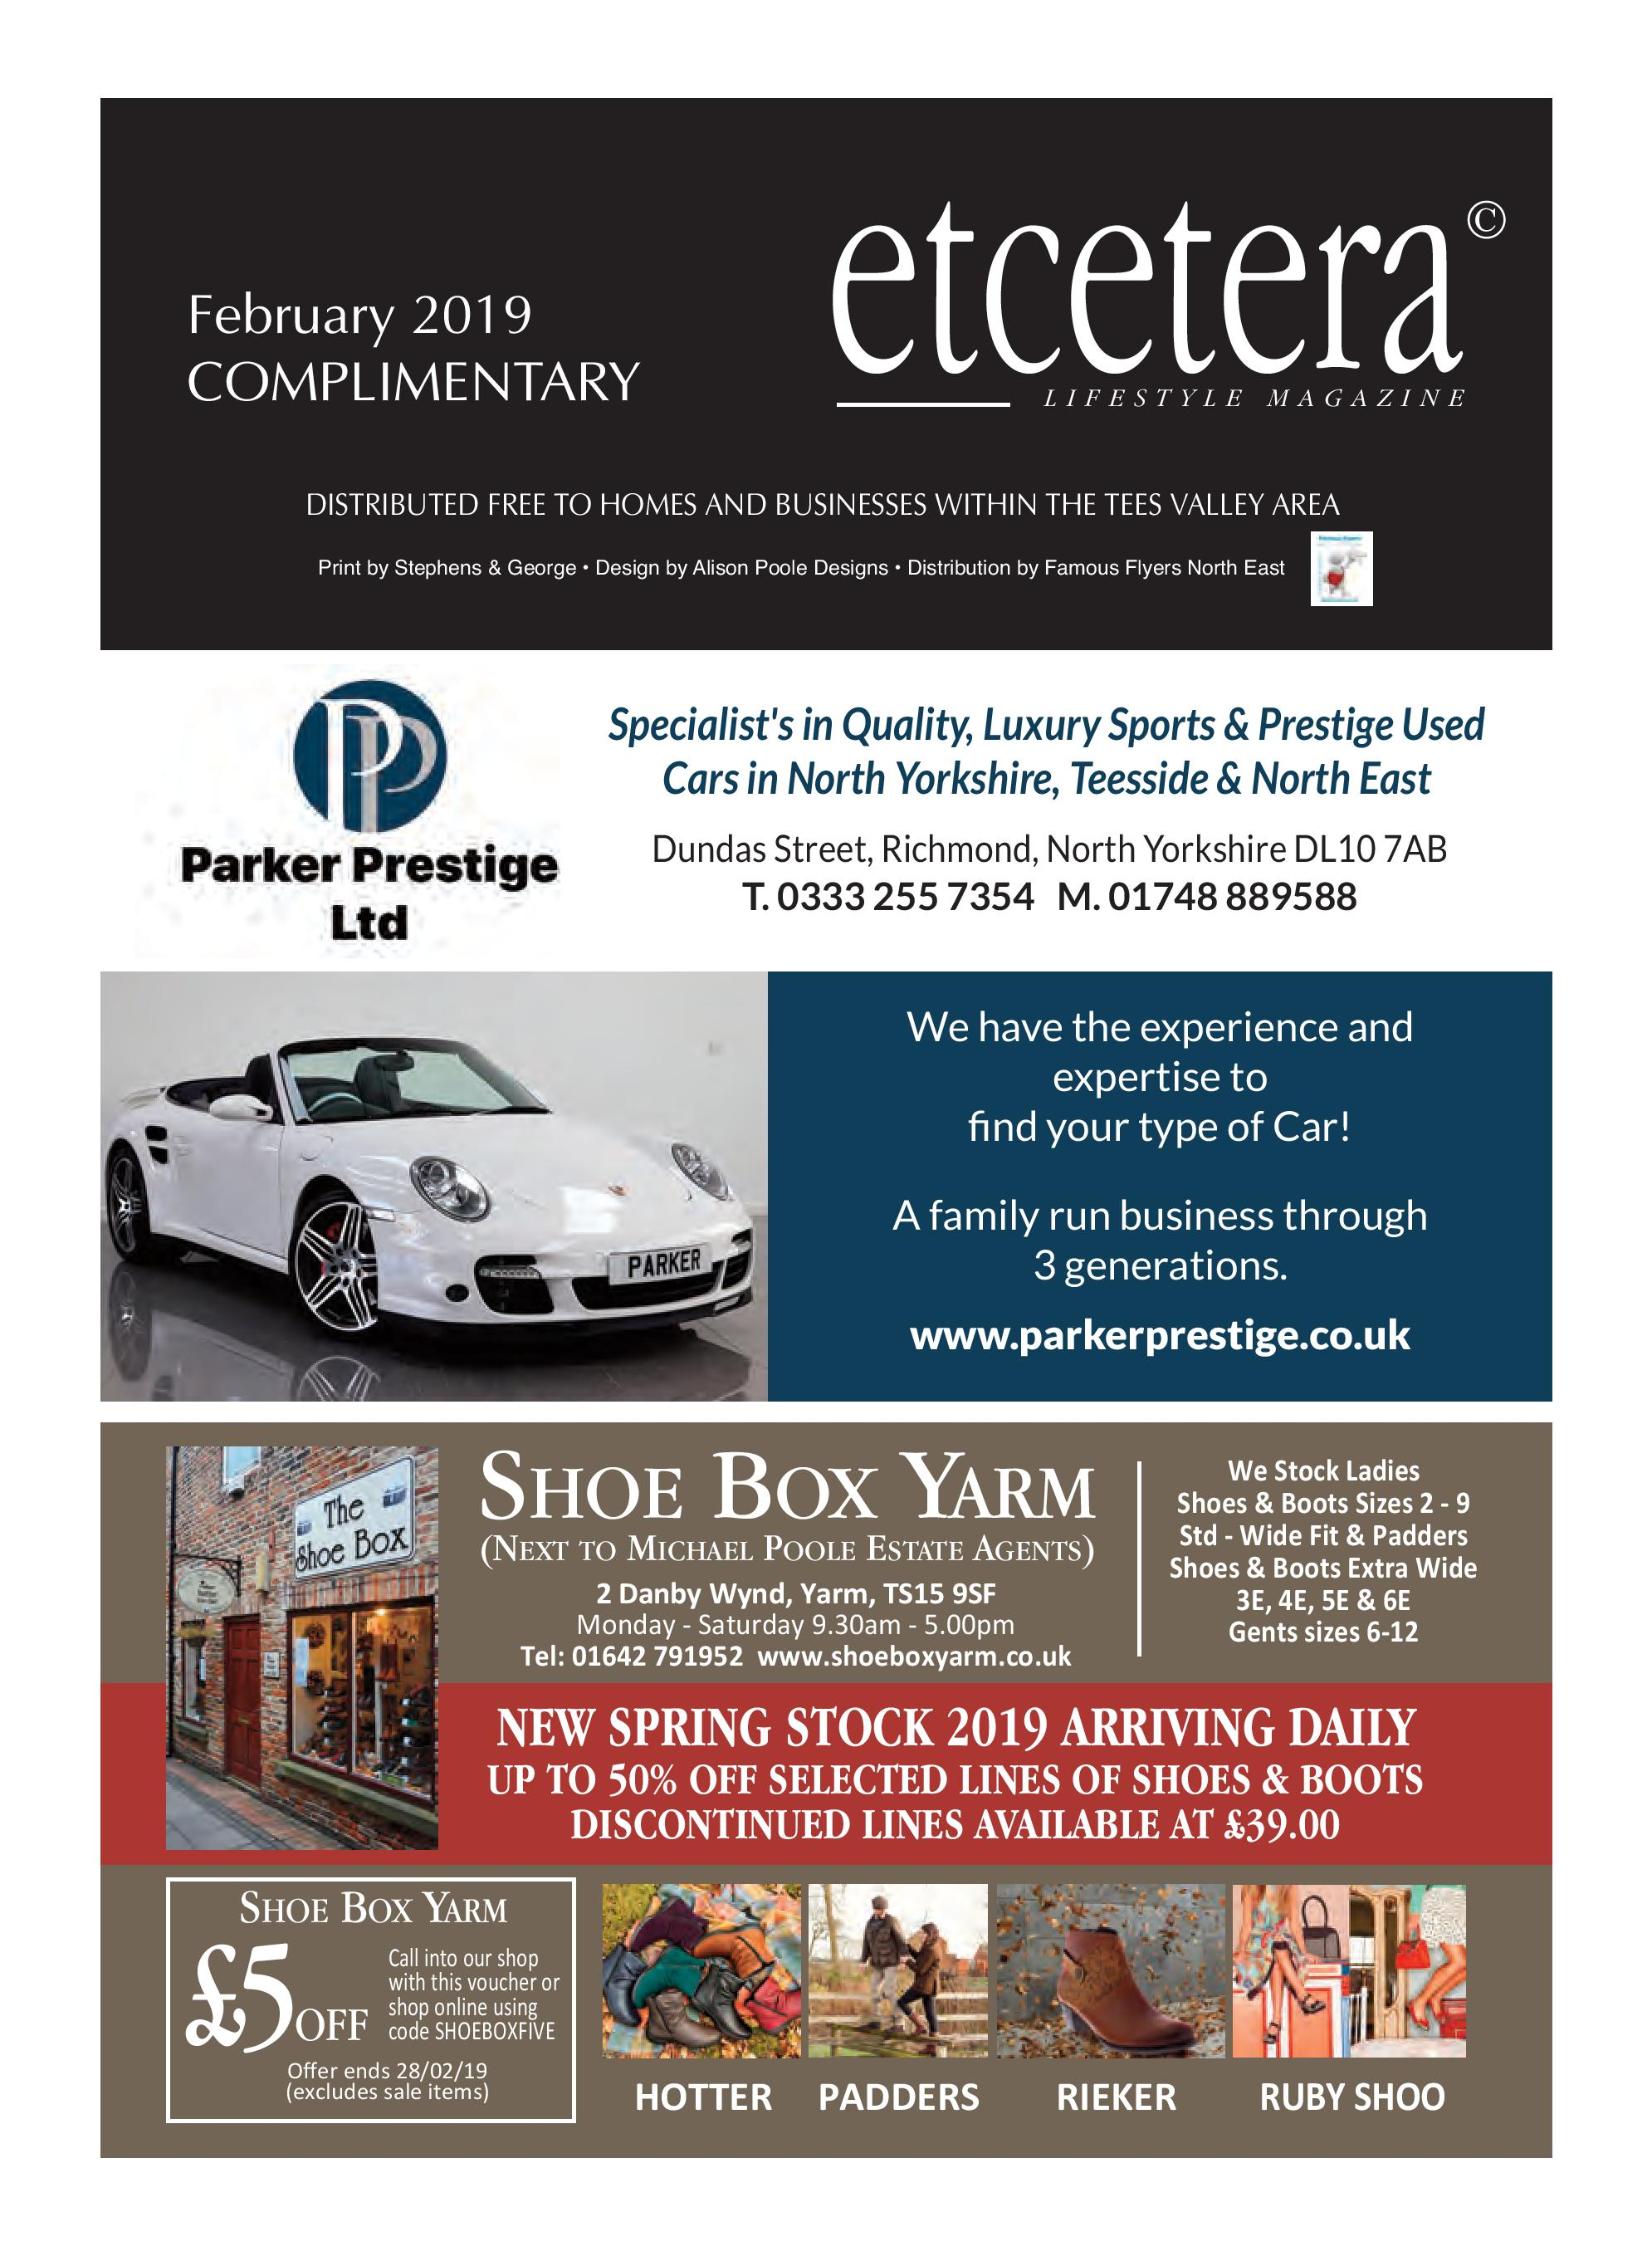 Etcetera Lifestyle Magazine - February 2019